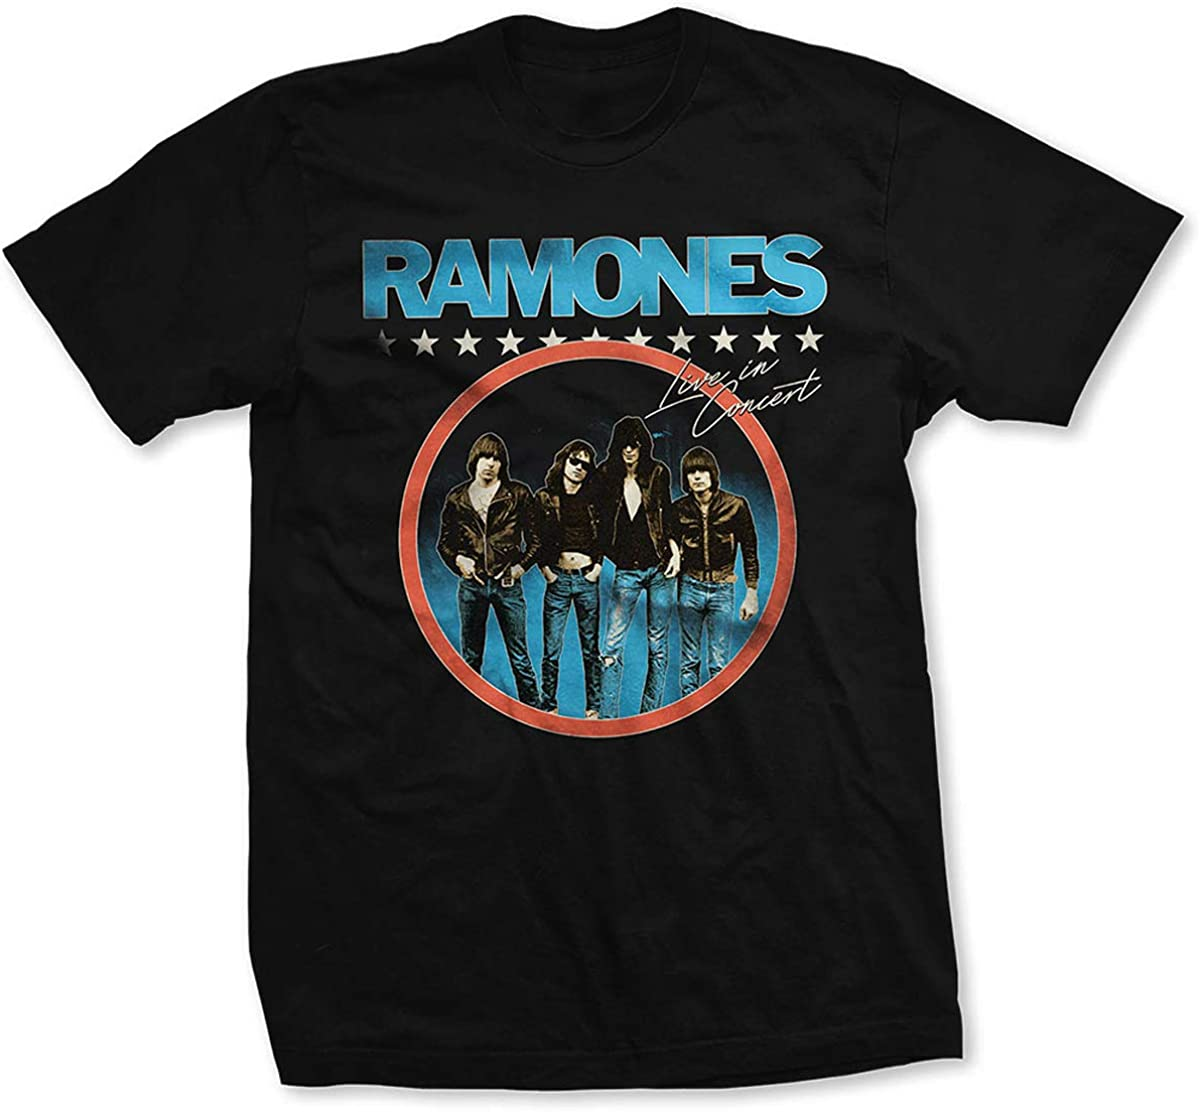 The Ramones Live in Concert Official Tee T-Shirt Mens Unisex